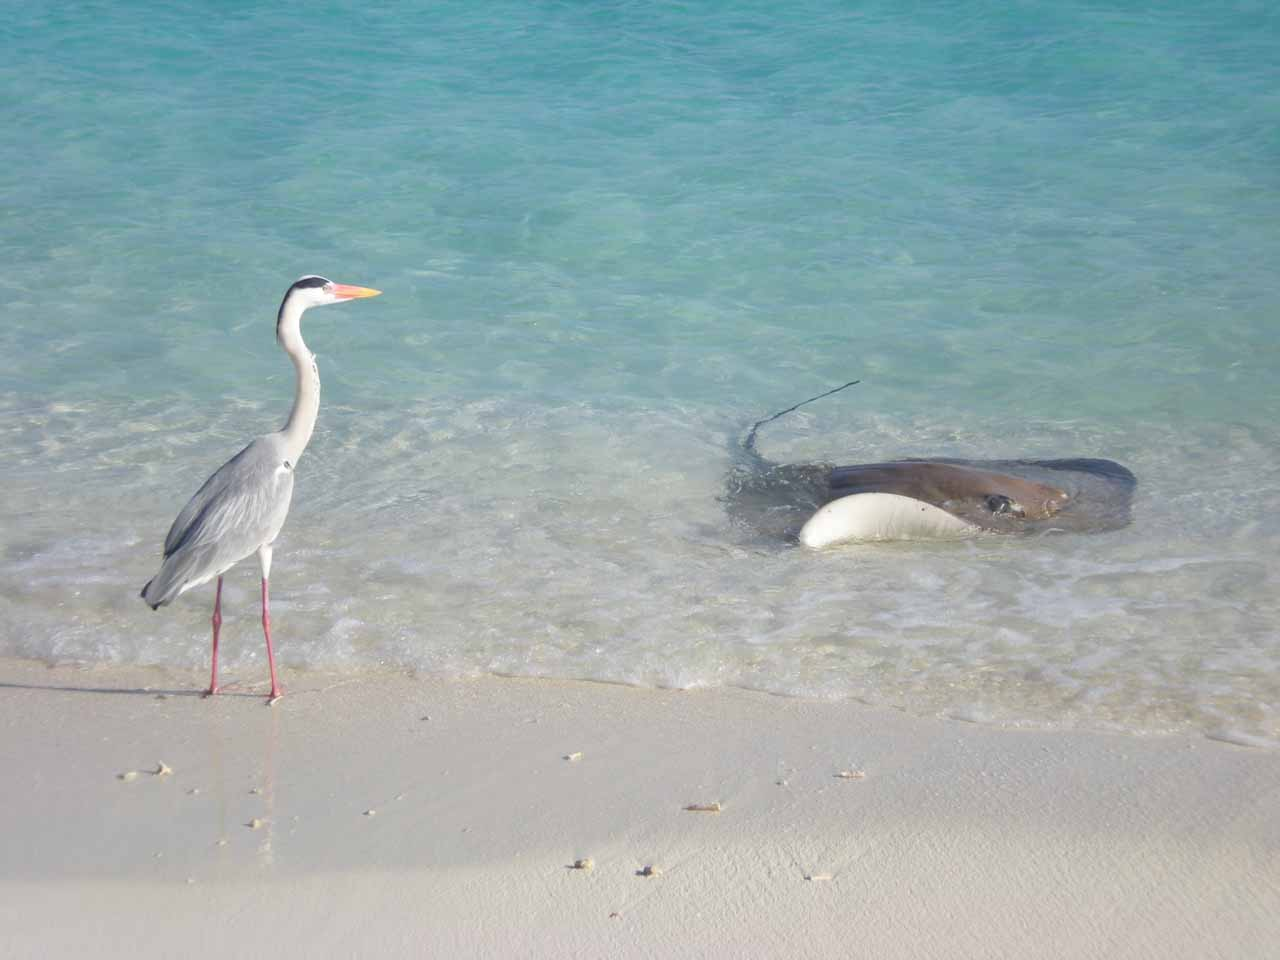 Some gull along with a stingray